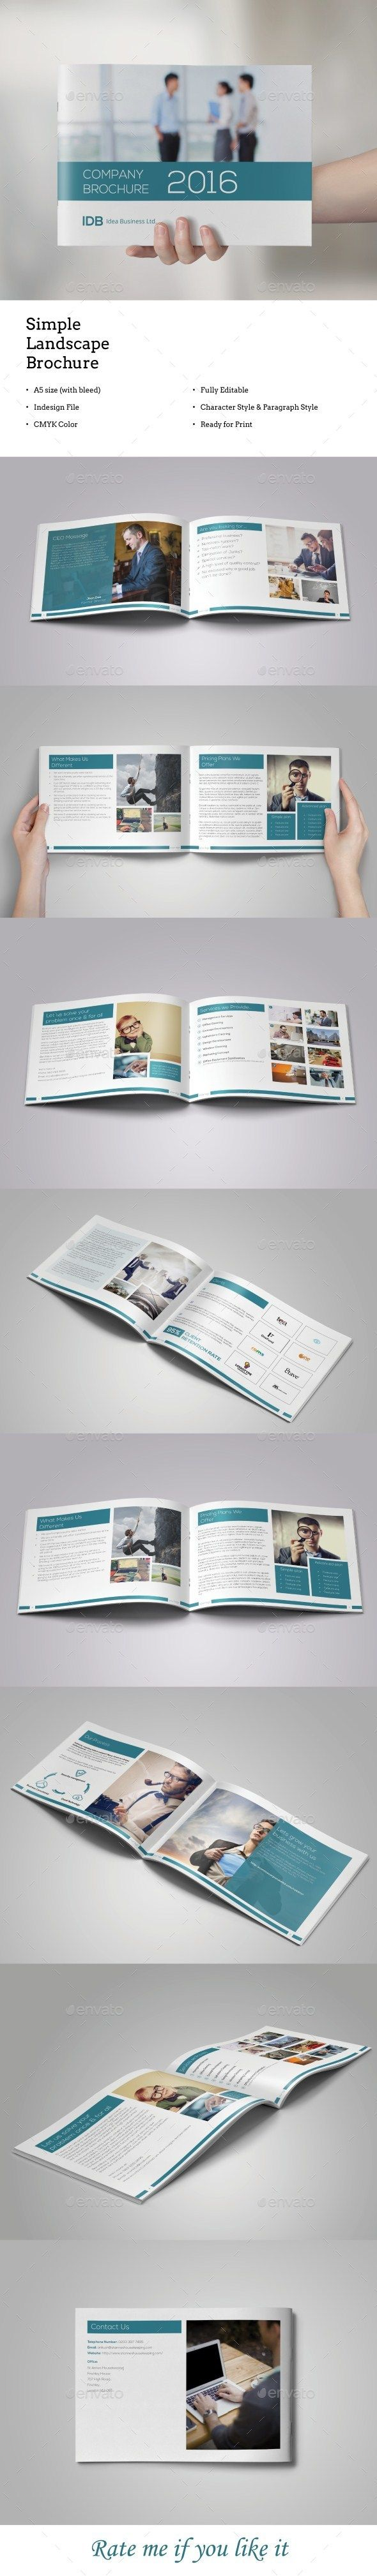 a5 landscape brochure template indesign indd download here httpsgraphicrivernetitema5 landscape brochure16937879refksioks